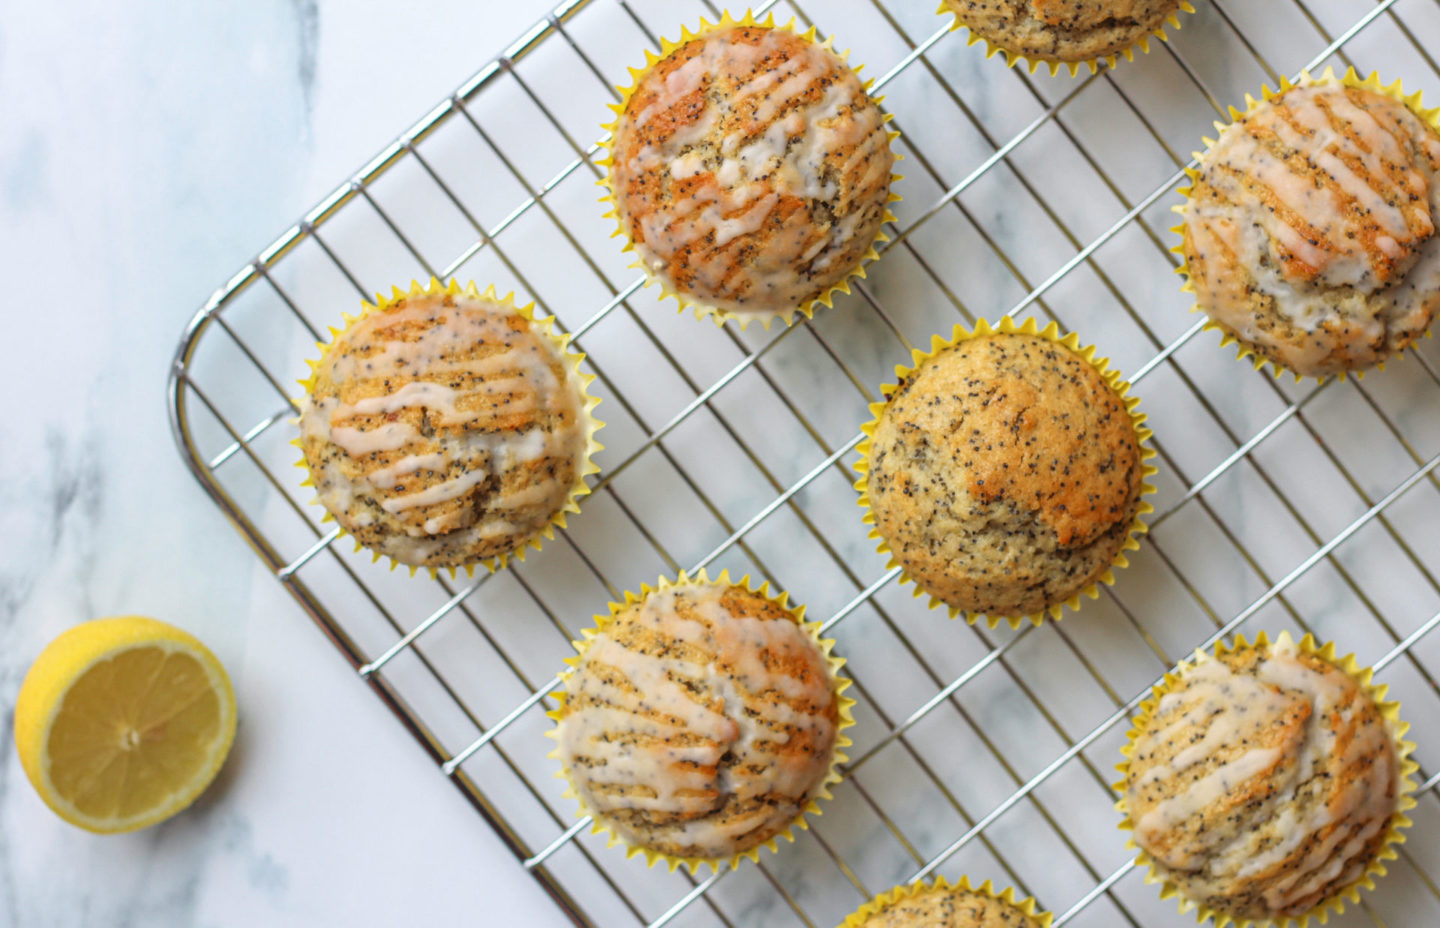 view from above of several lemon poppy seed muffins on wire rack